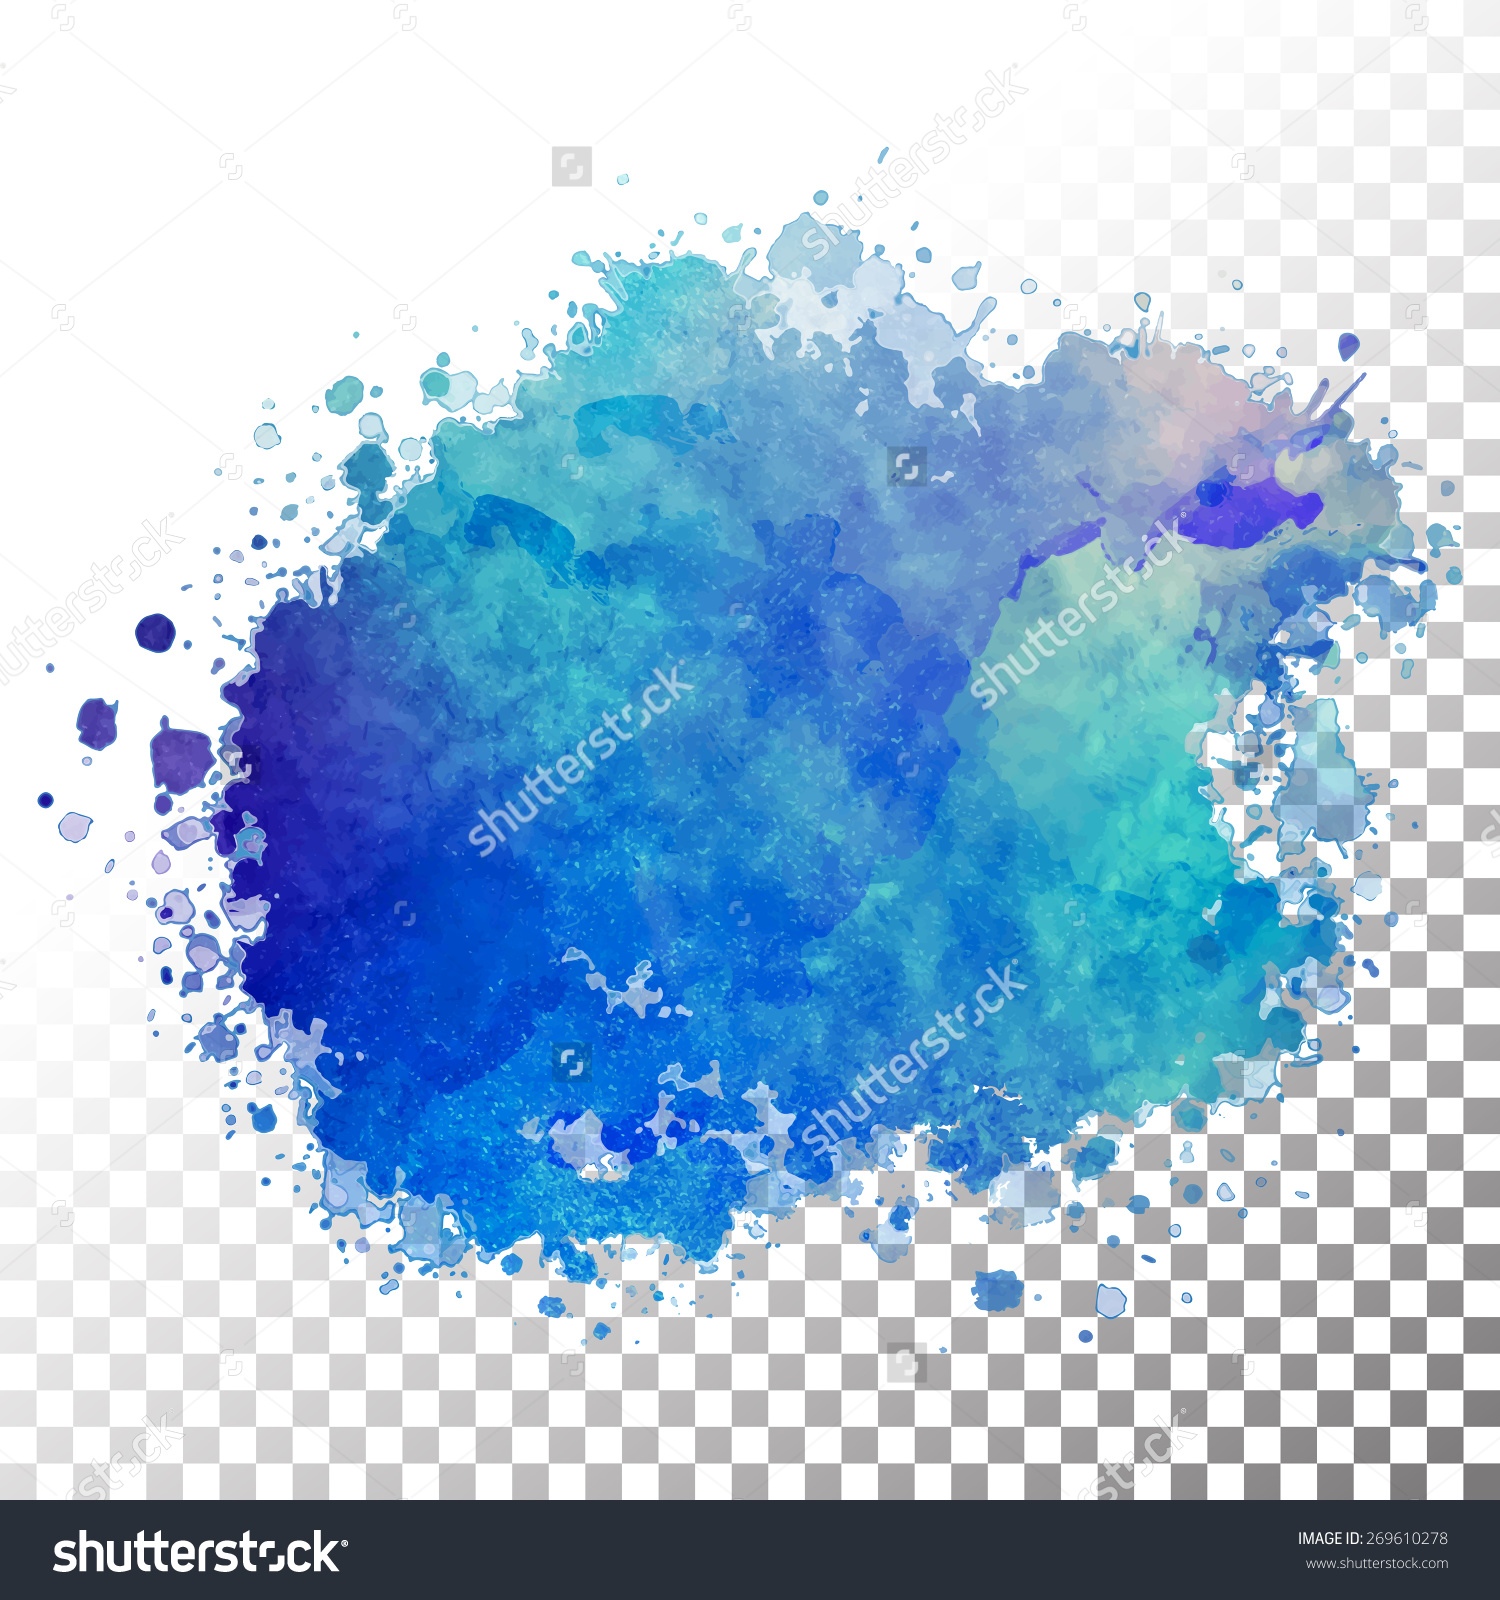 Vector Watercolor Painted Blue Blot Hand Stock Vector 269610278.